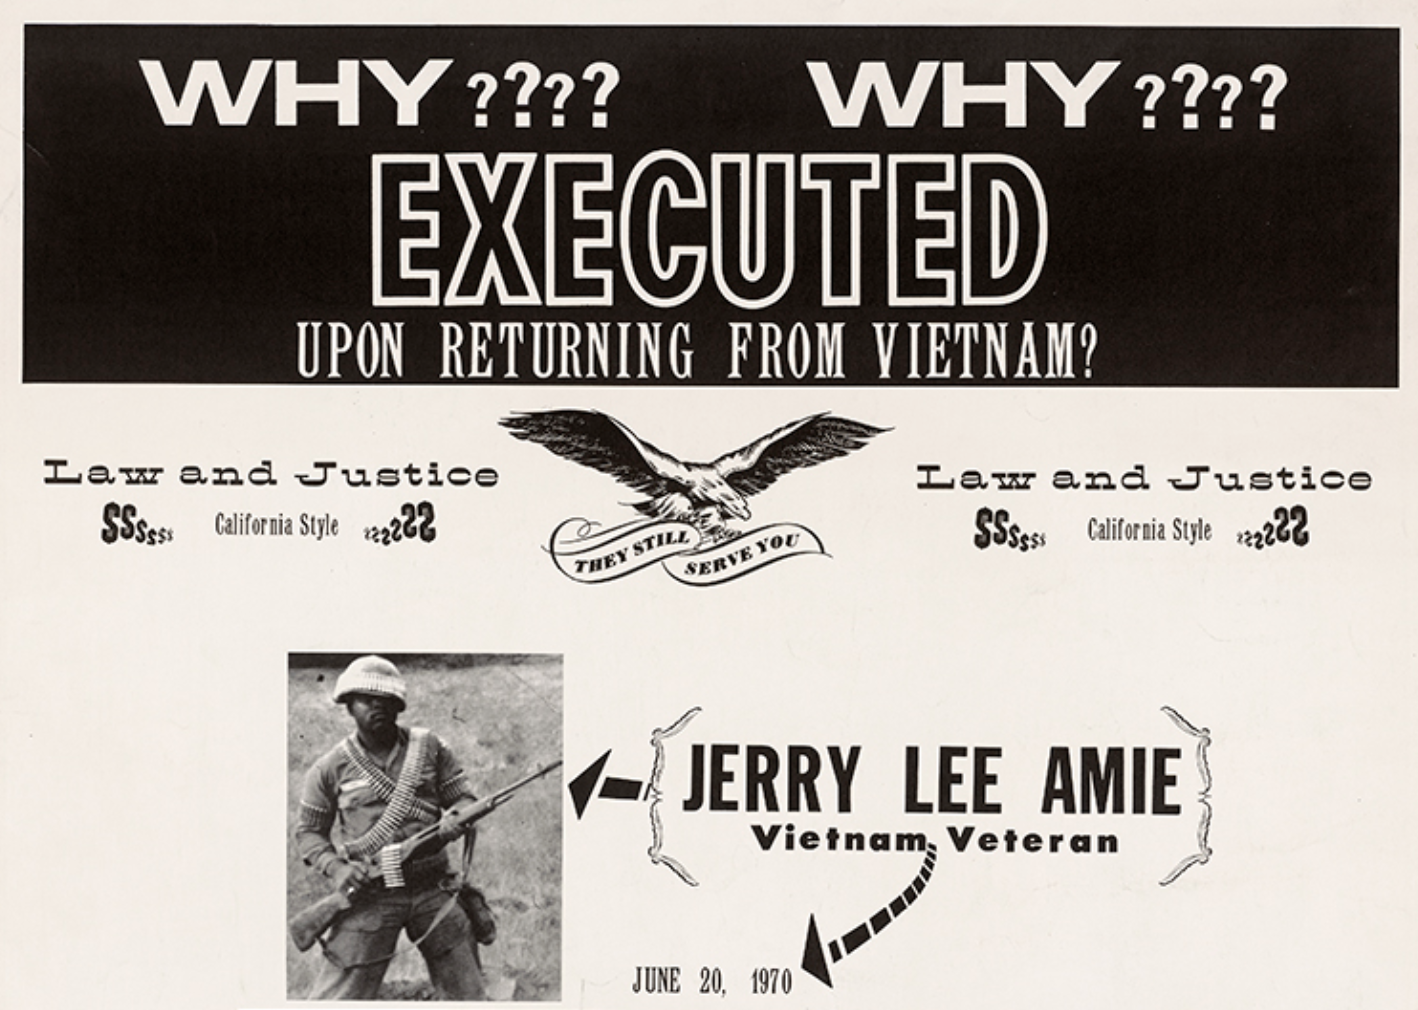 Vermont S. Galloway, Westside Press, Why Executed Upon Returning from Vietnam? (image from the Collection of the Center for the Study of Political Graphics)